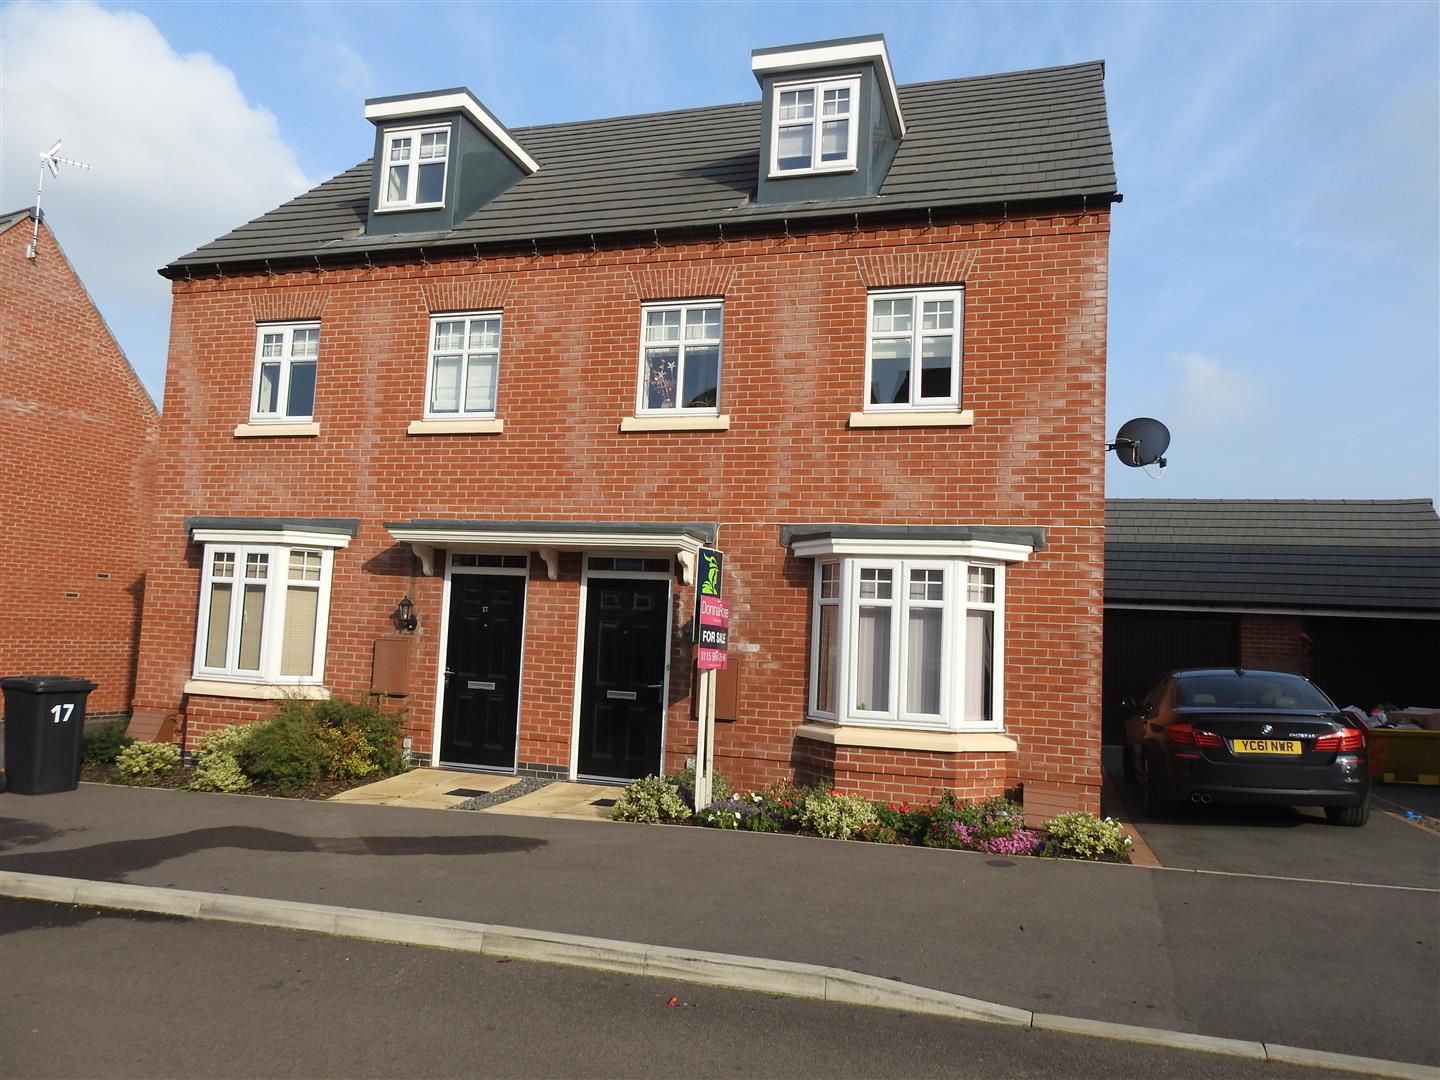 3 Bedrooms Semi Detached House for sale in Latin Grove, Hucknall, Nottingham